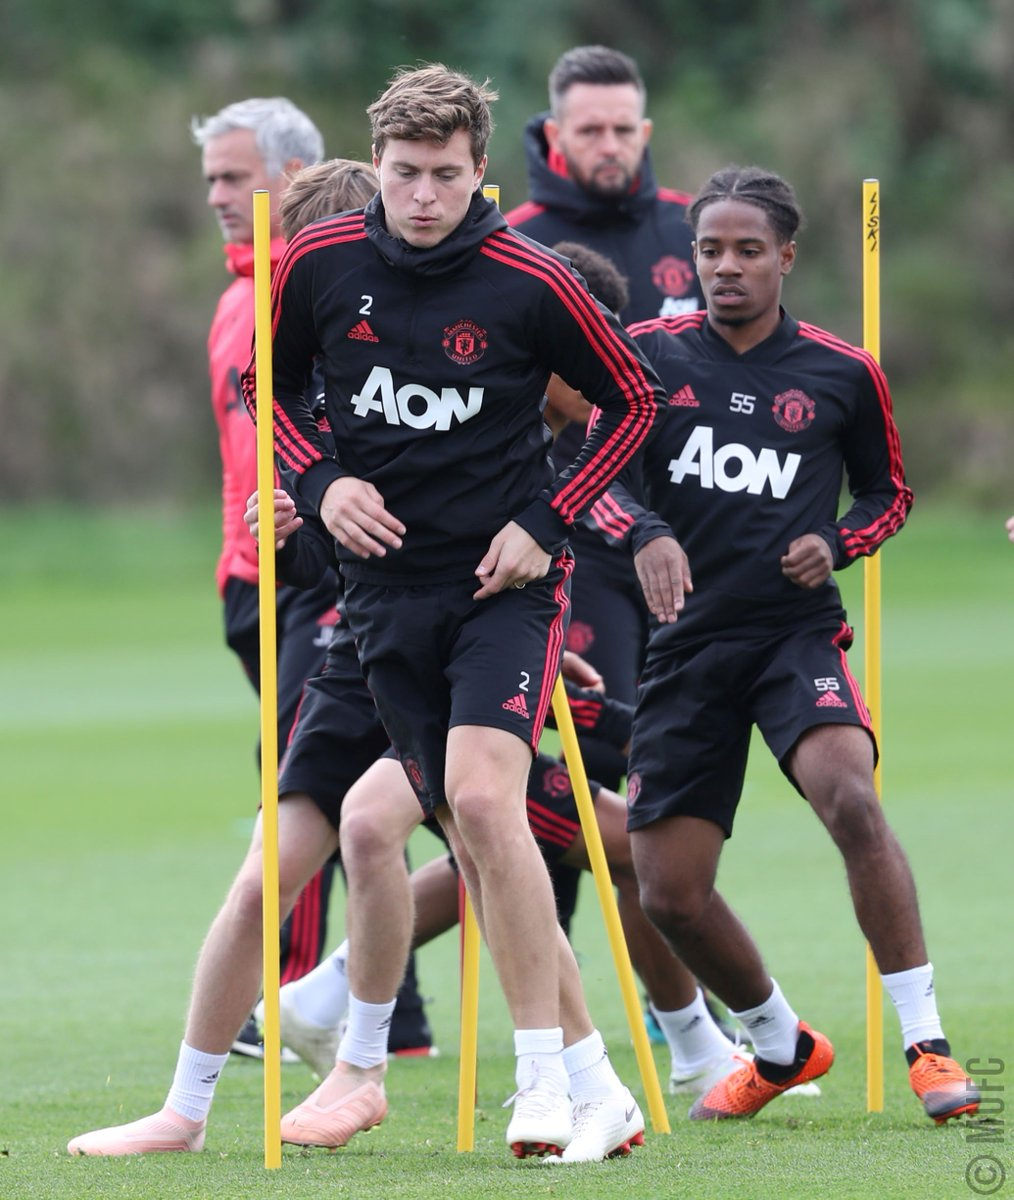 Now our focus turns to West Ham. #MUFC